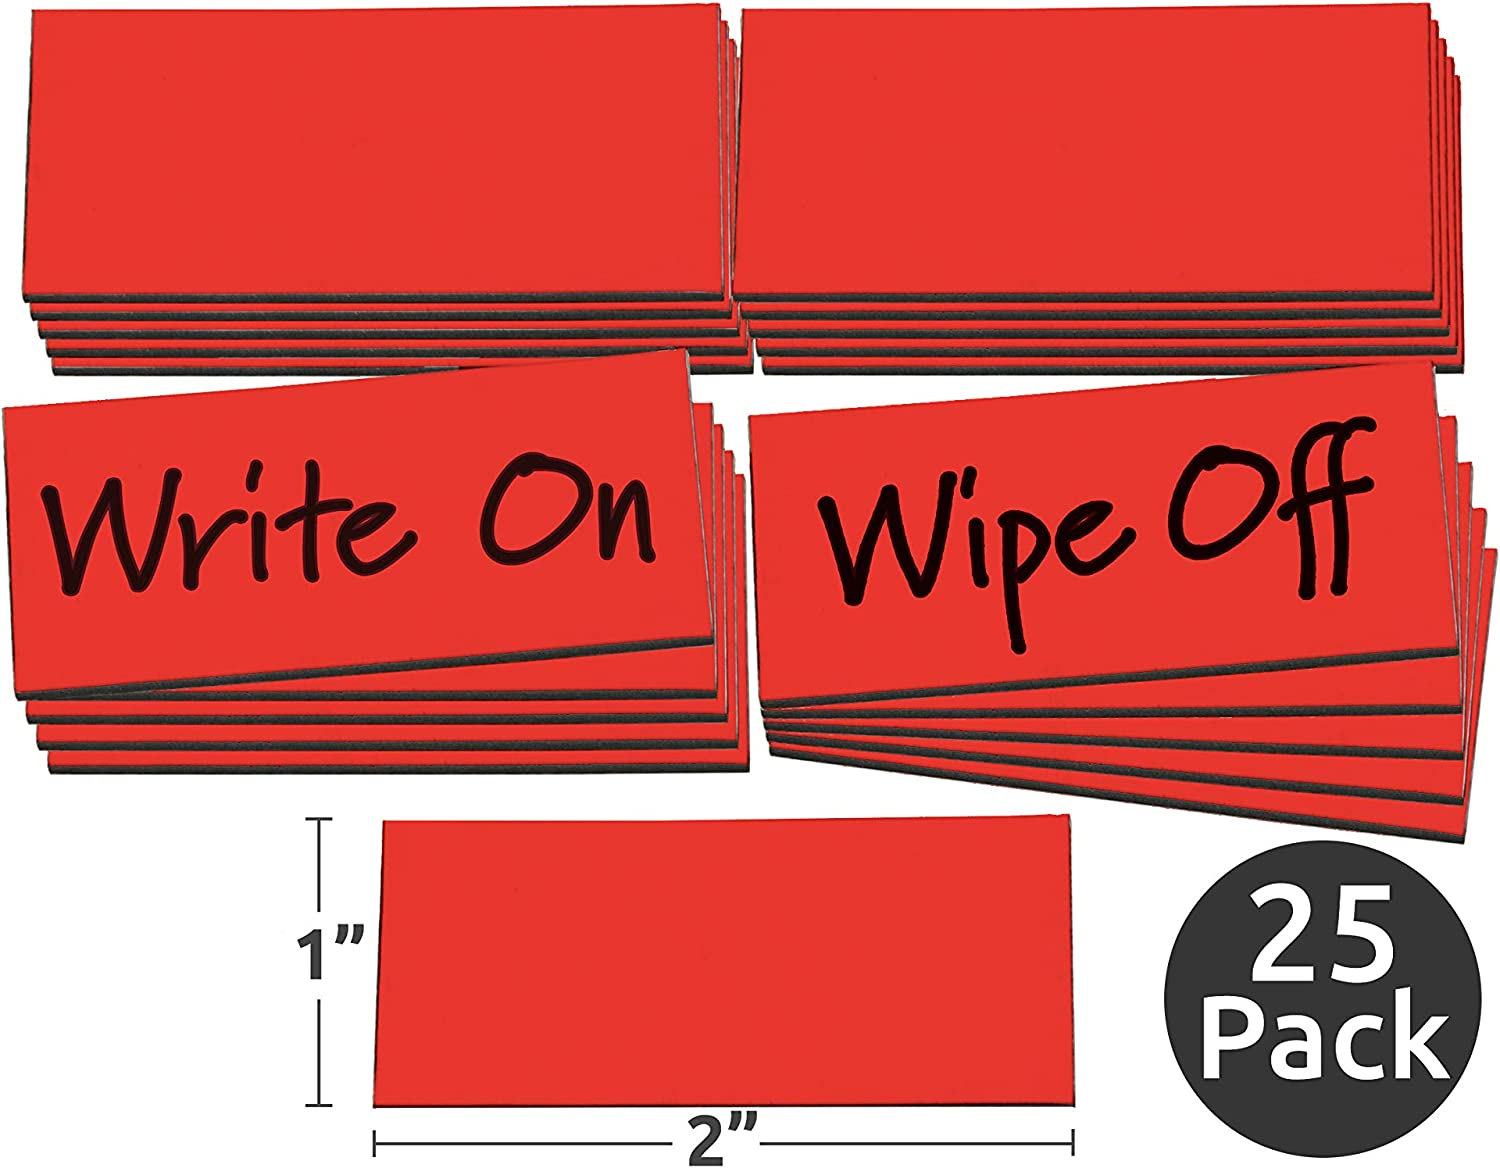 """1"""" x 2"""" Red Damp Erase Write On Wipe Off Colored Magnet Strips 25/Pkg 71nL84NC4wL"""